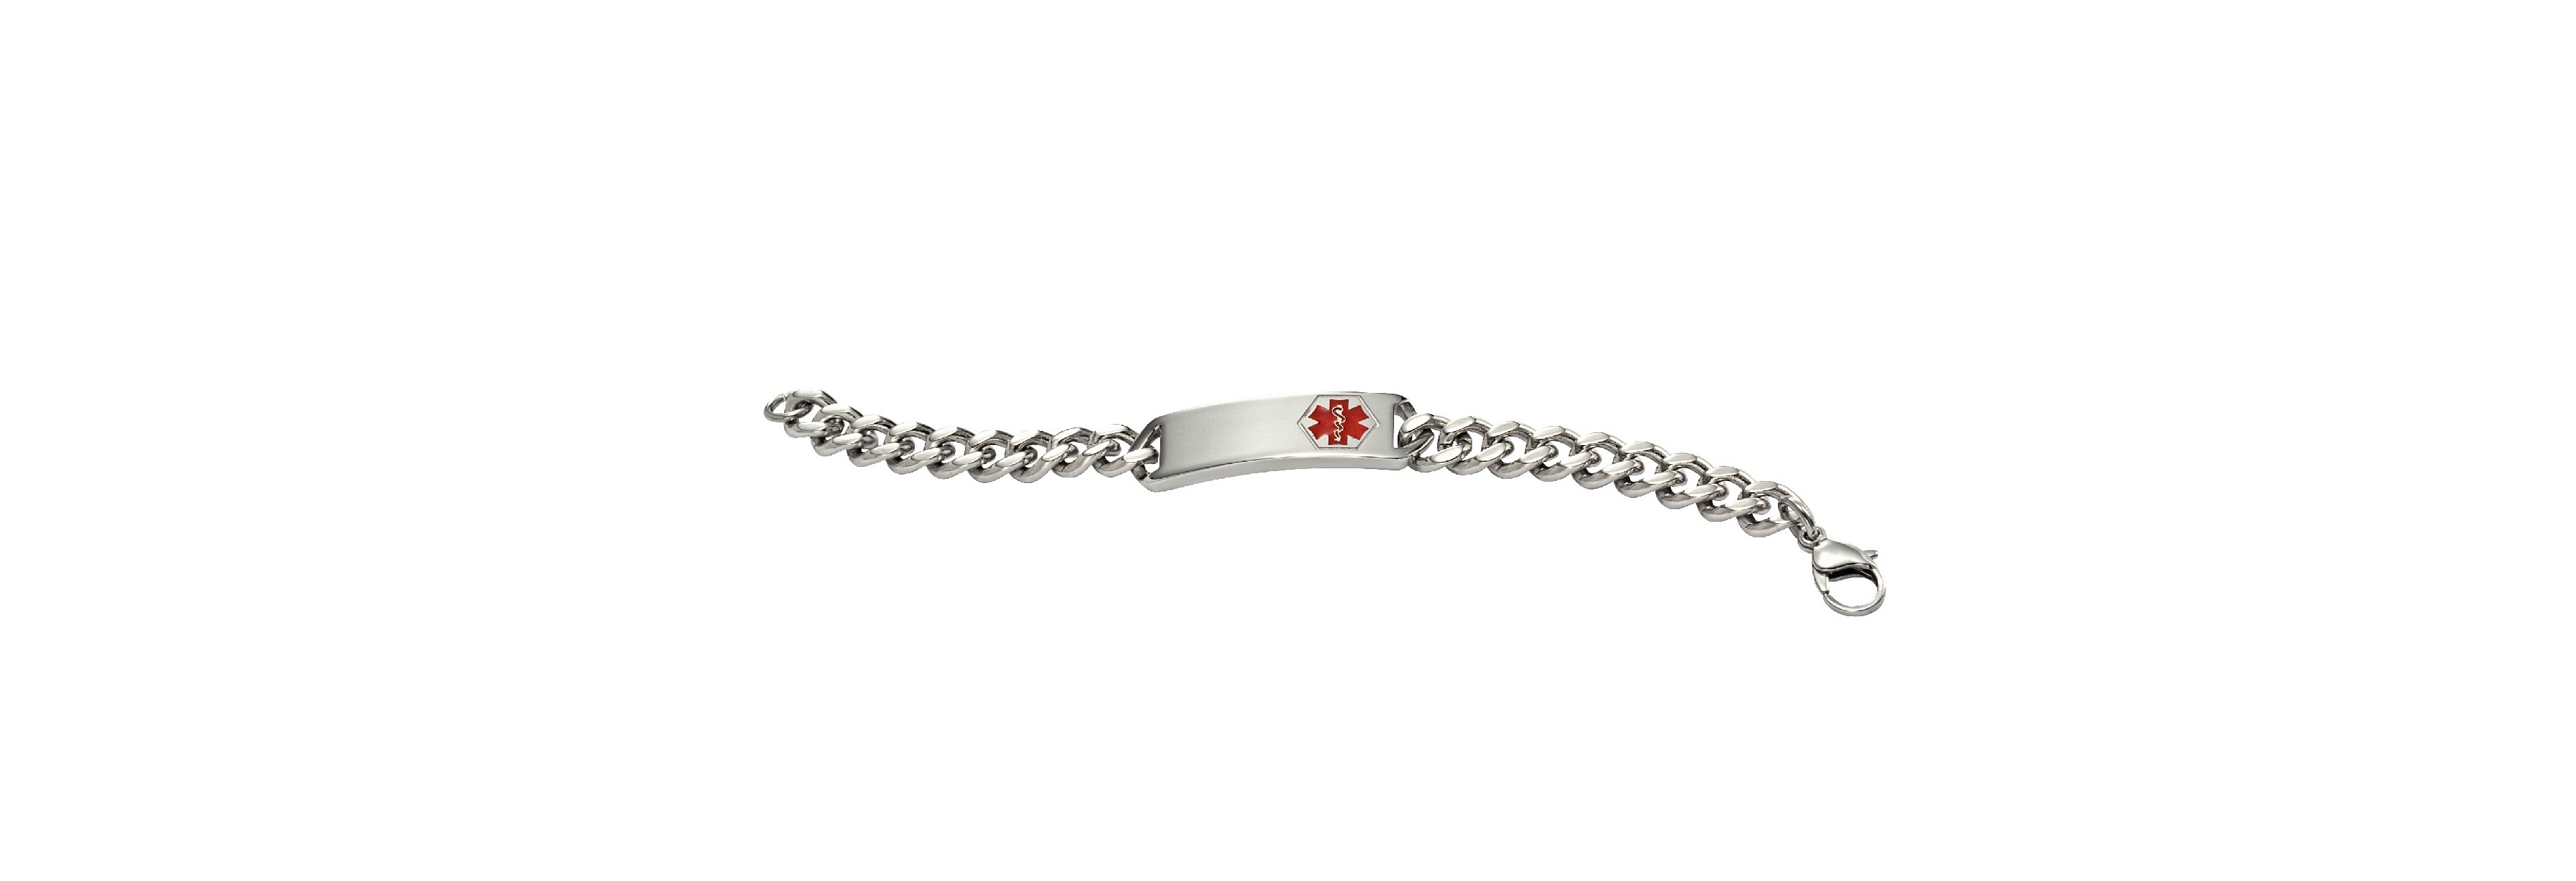 Stainless Steel Classic Medical ID Bracelet - Medical ID